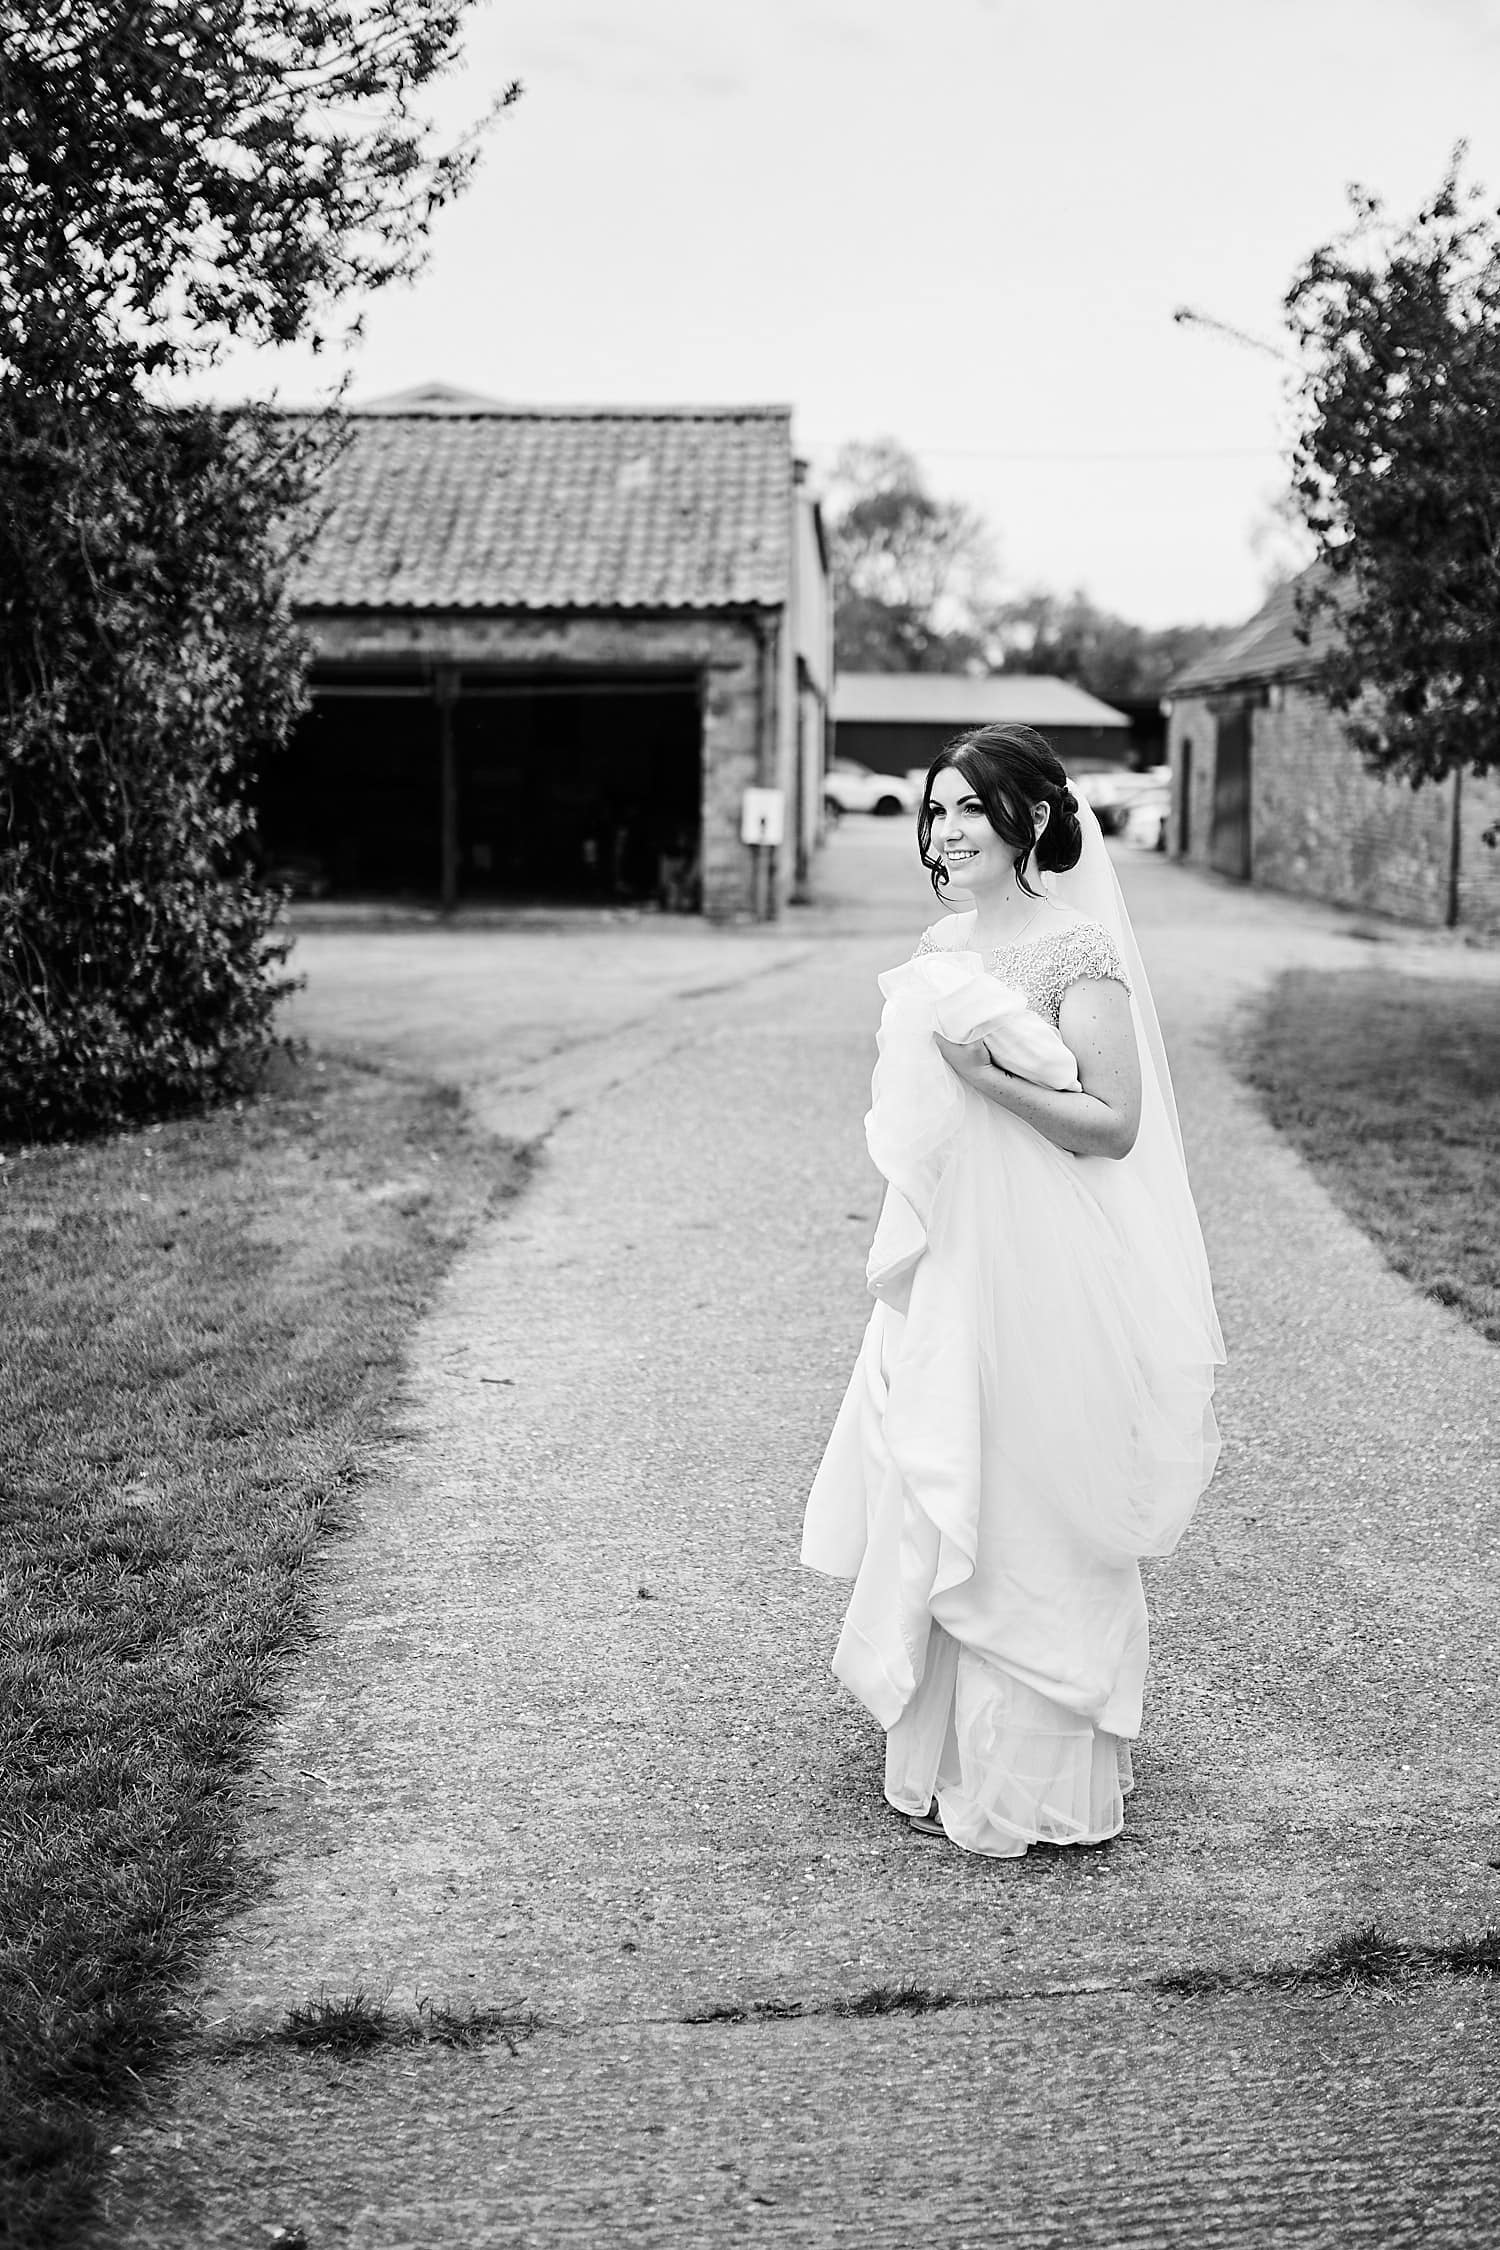 A bride taking a moment on her wedding day.